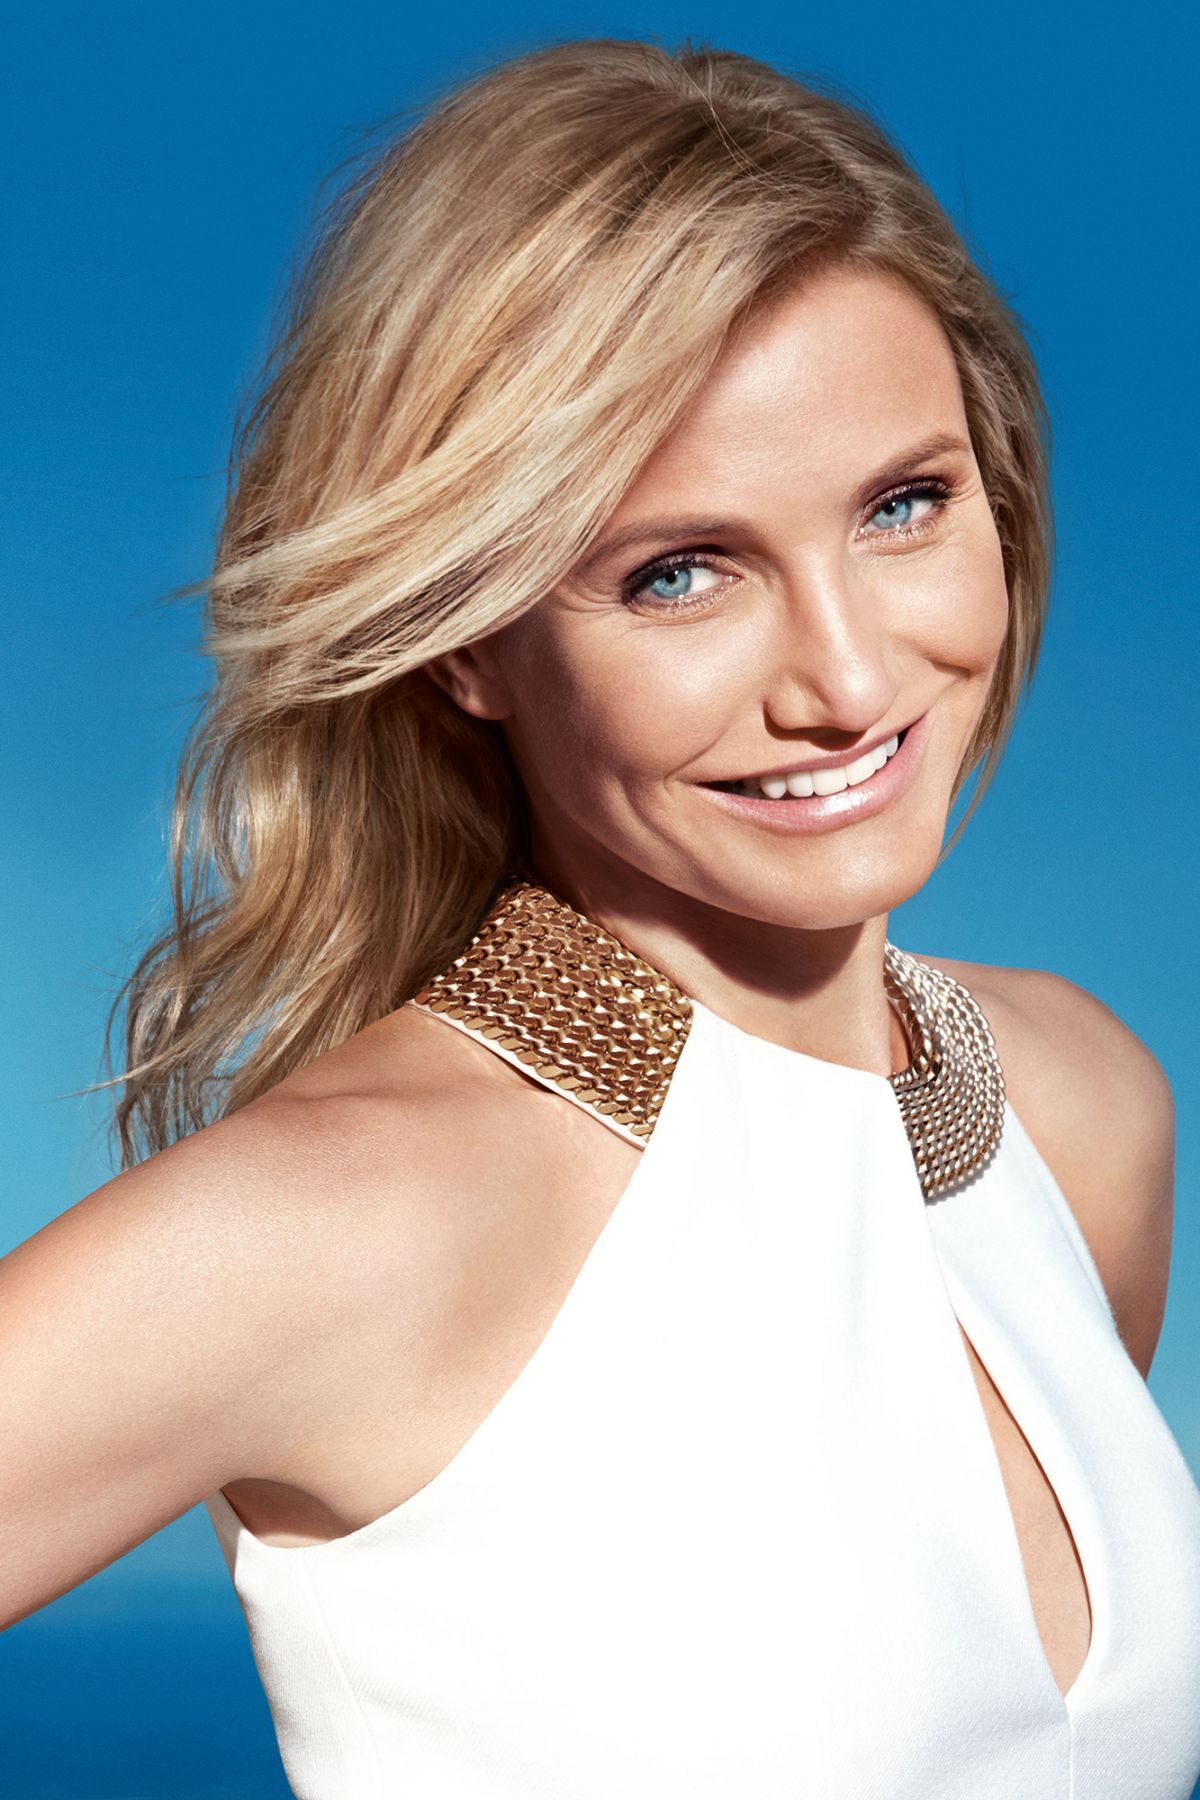 Cameron diaz sex tape red band trailer 2014 - 1 8